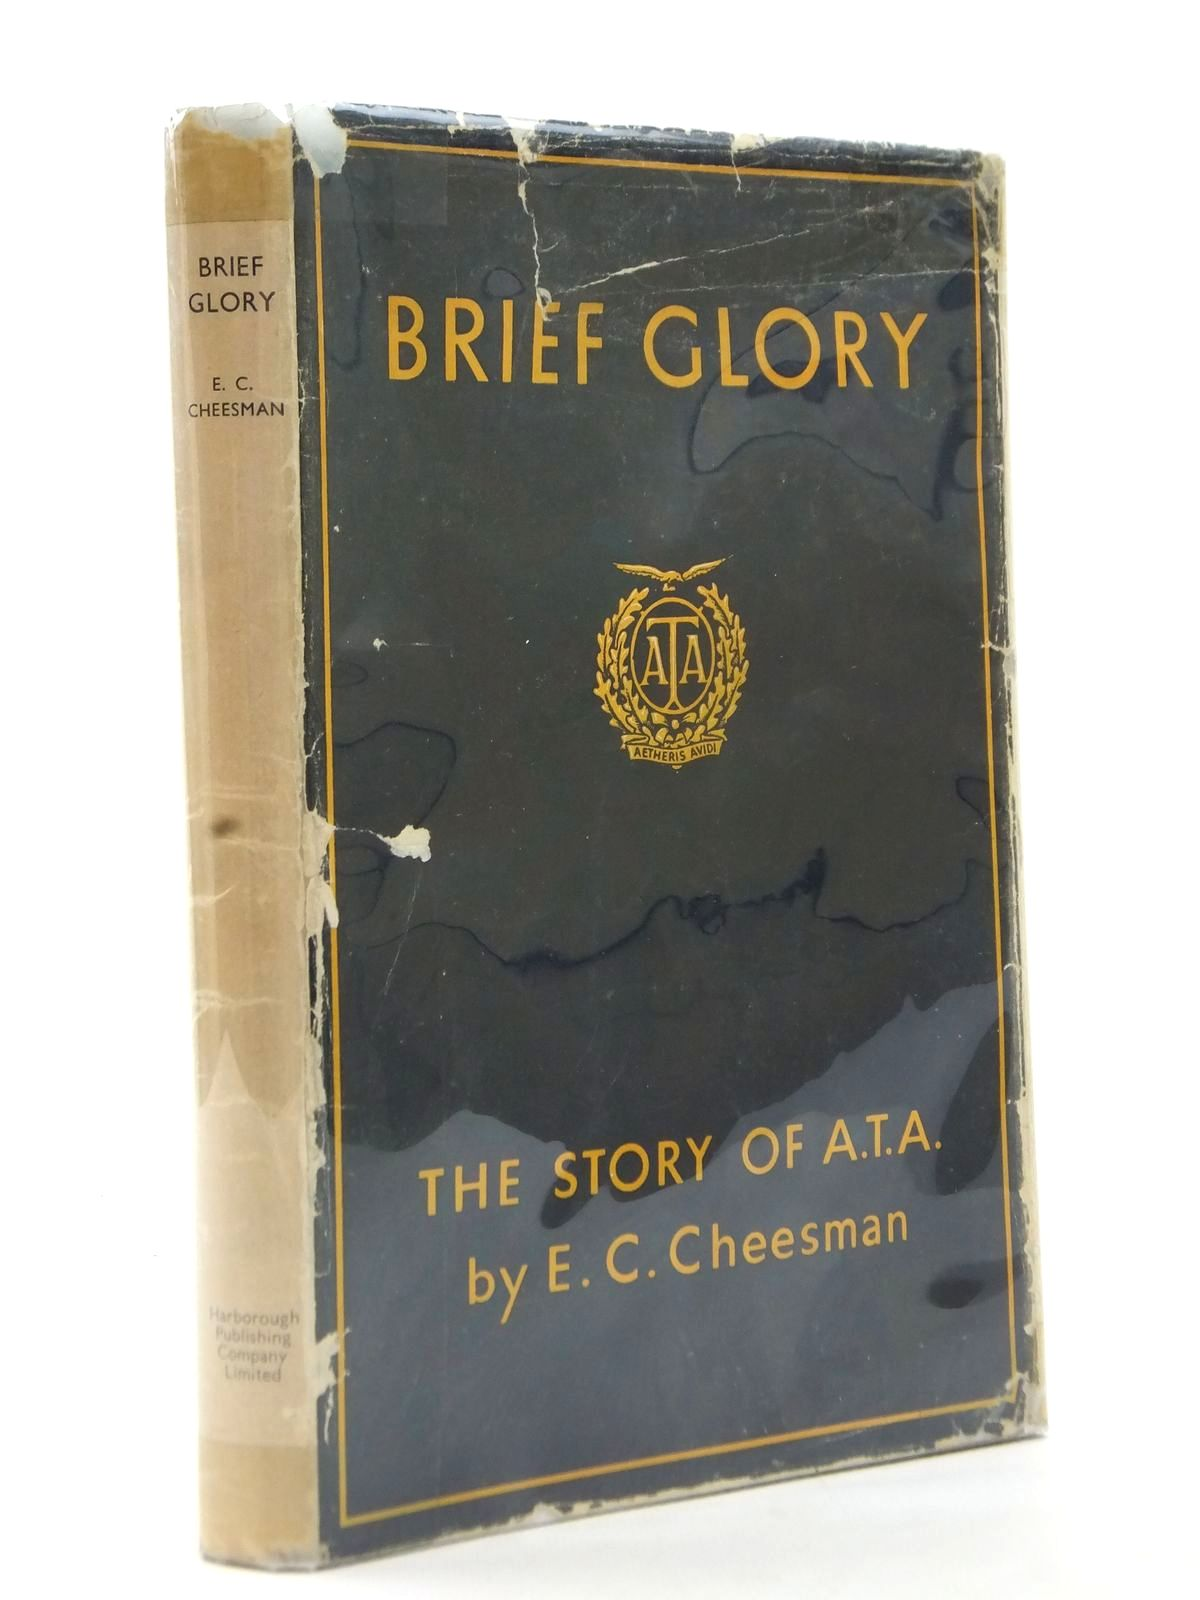 Photo of BRIEF GLORY written by Cheesman, E.C. published by The Harborough Publishing Co. Ltd. (STOCK CODE: 1812935)  for sale by Stella & Rose's Books